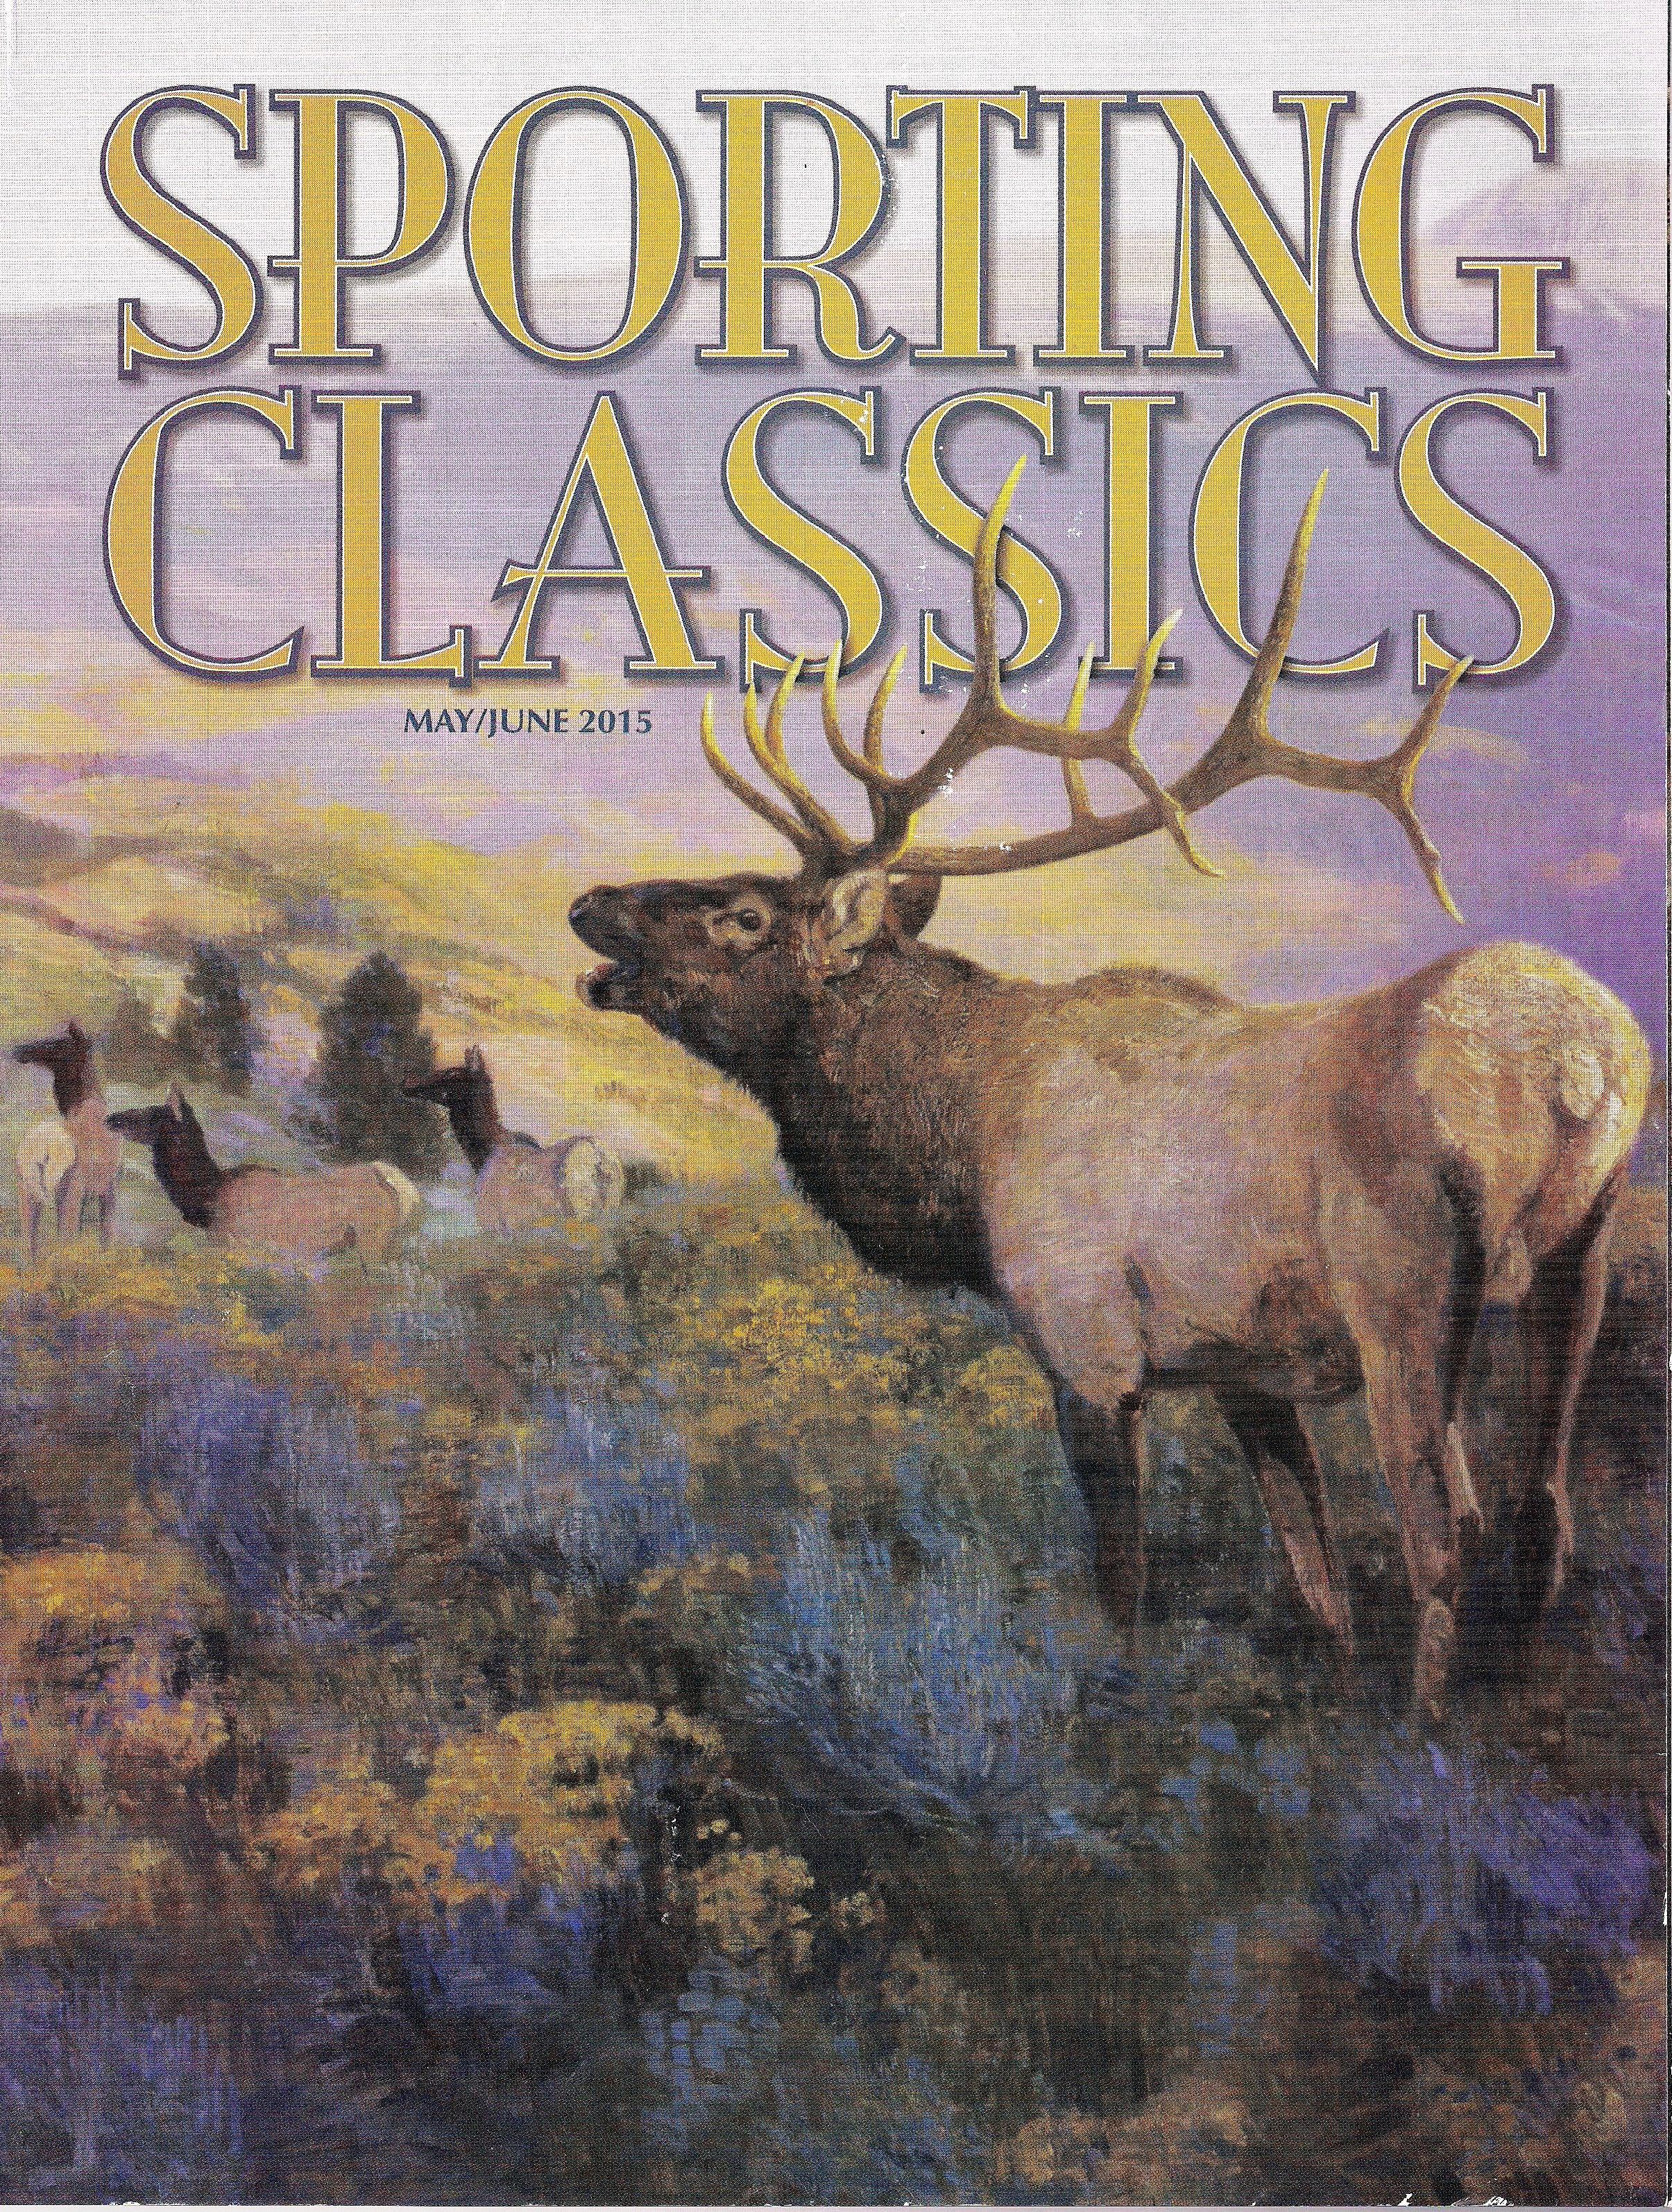 Sporting Classics Magazine May/June 2015